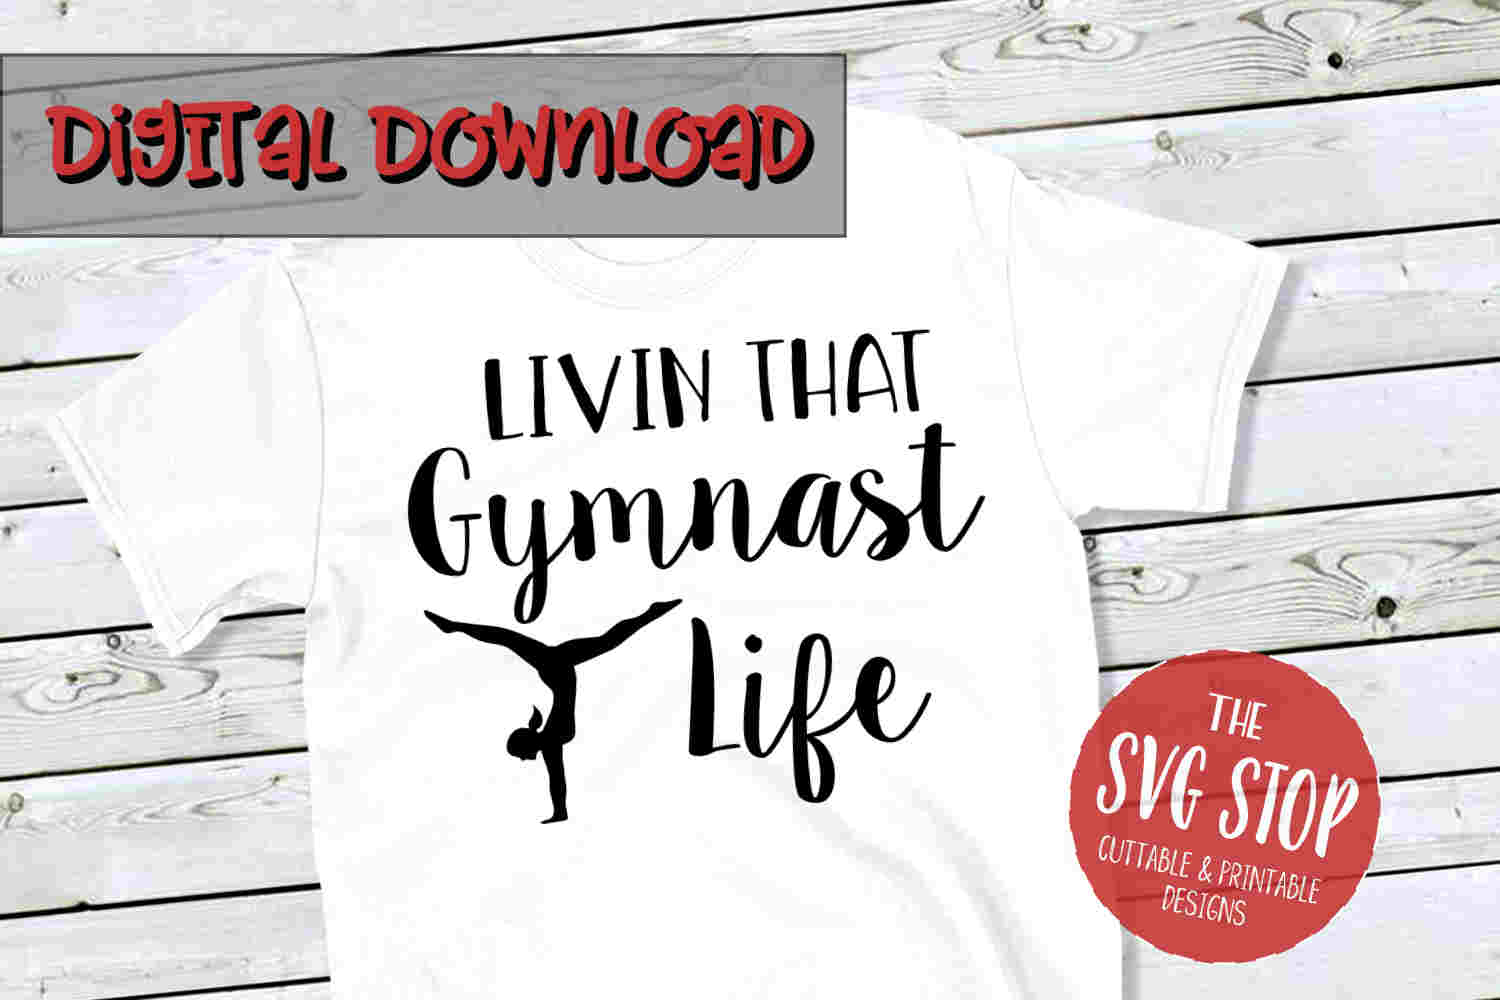 Gymnast Life -SVG, PNG, DXF example image 1